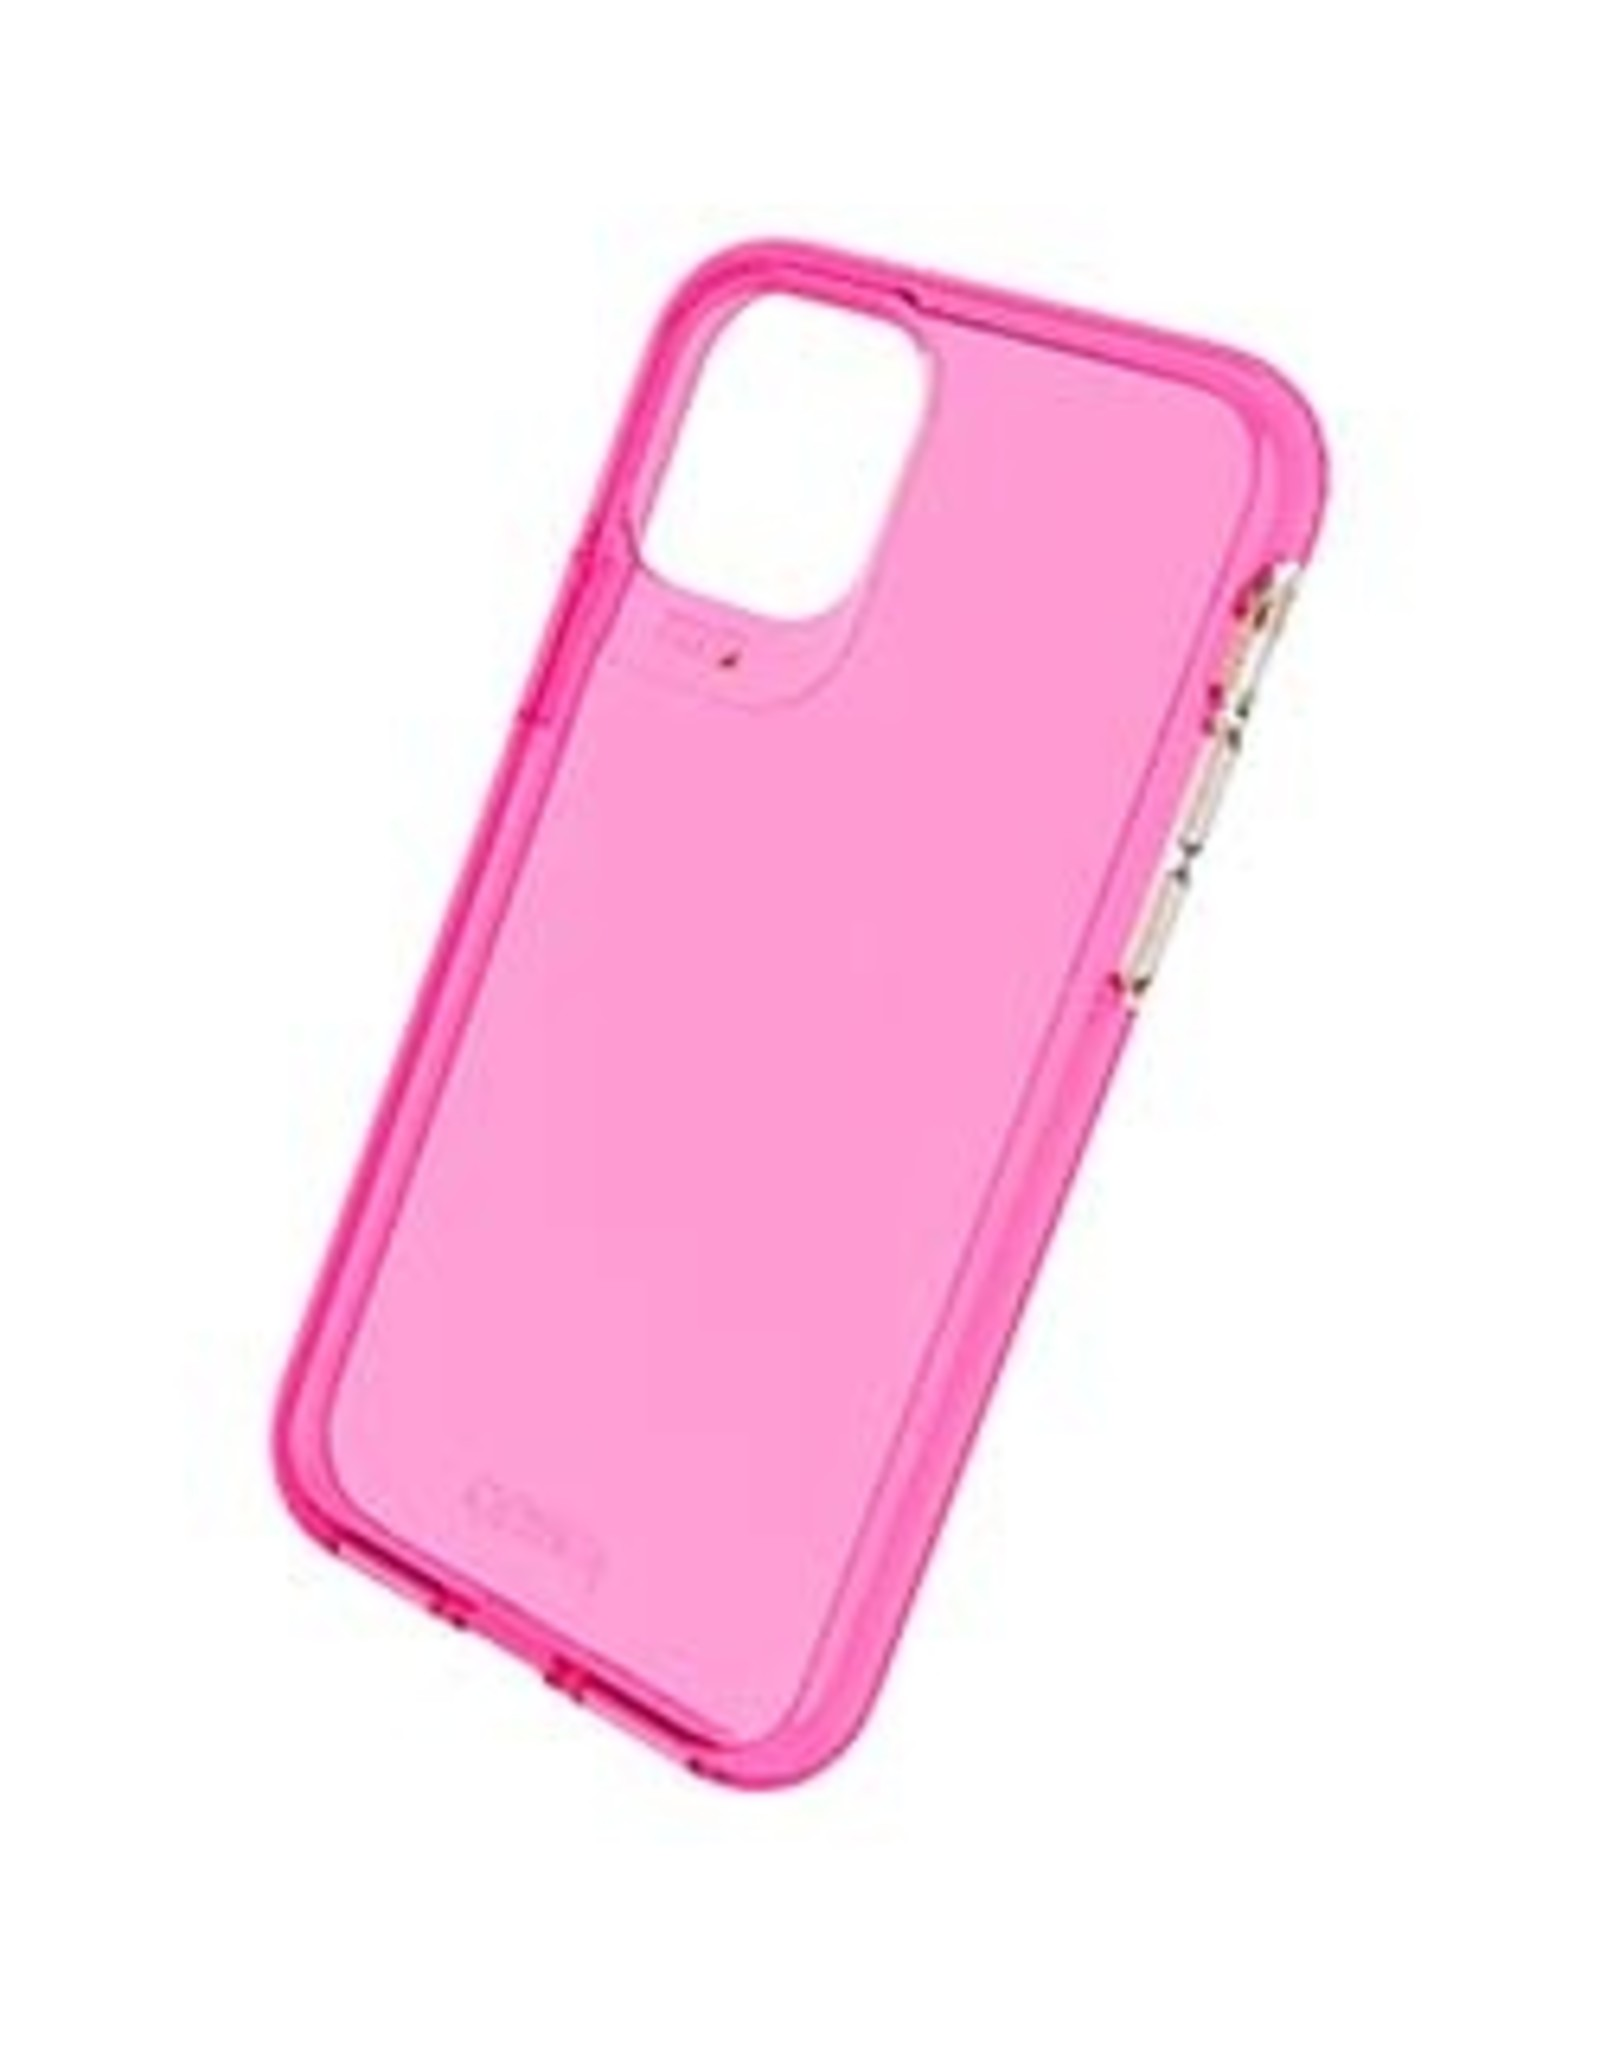 GEAR4 GEAR4 | iPhone 11 Pro D3O Pink Crystal Palace Neon Case 15-04780